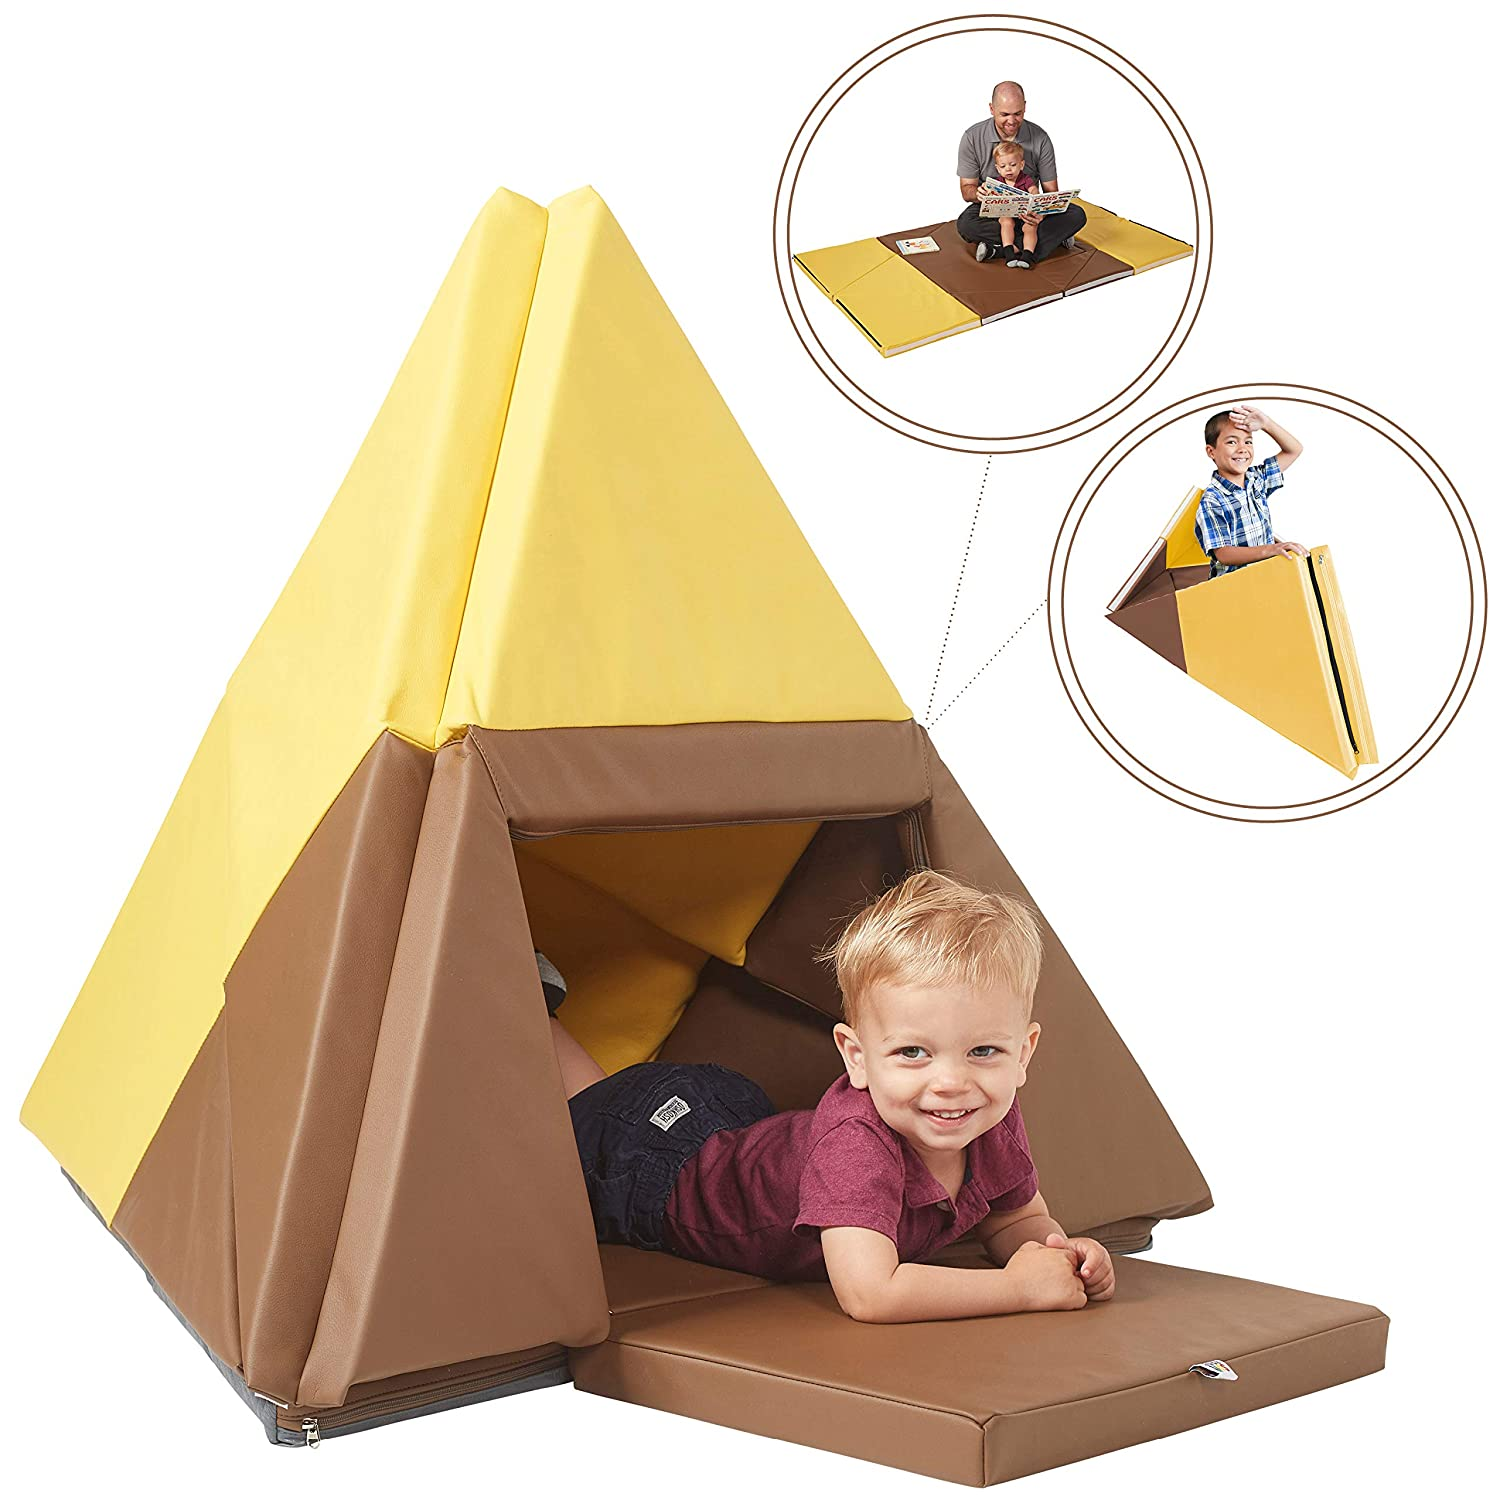 ECR4Kids Tent Canoe and Tumbler Too Folding Play Mat - Unique Transforming Activity Mat for Toddlers and Kids, Chocolate/Yellow